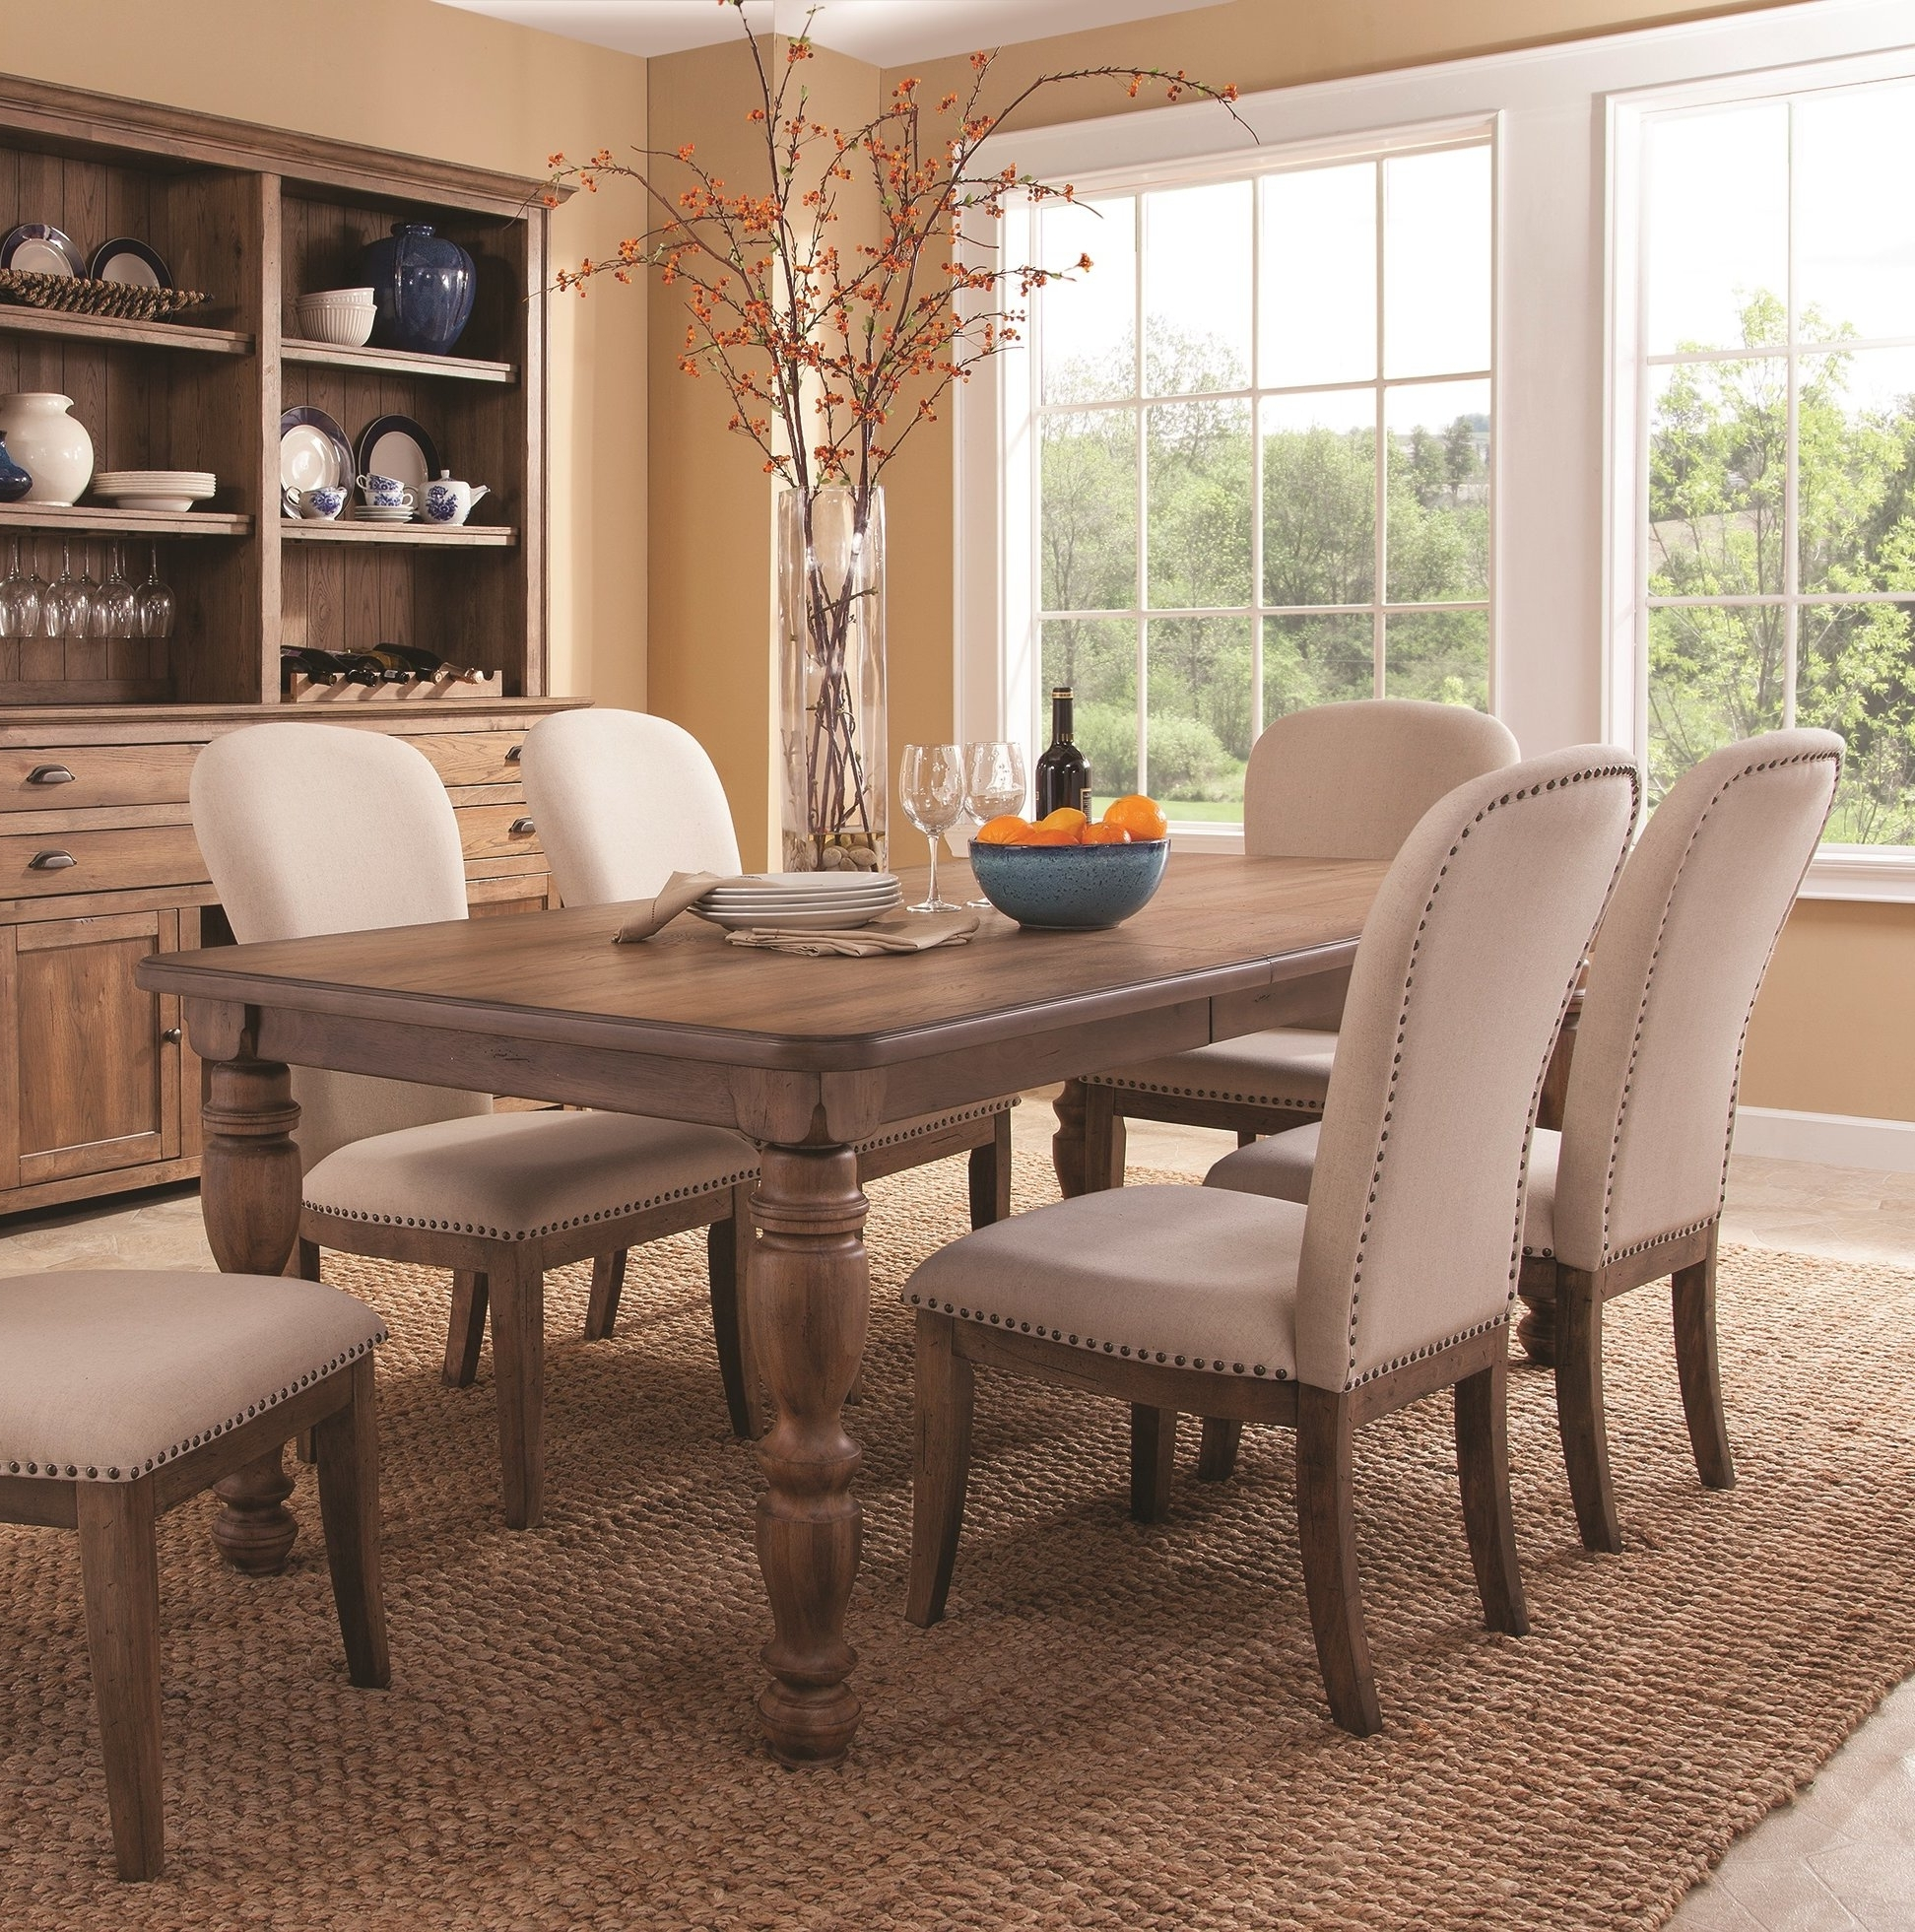 Extendable Dining Table Sets regarding Latest Panama Jack South Mountain Farmhouse Extendable Dining Table Set